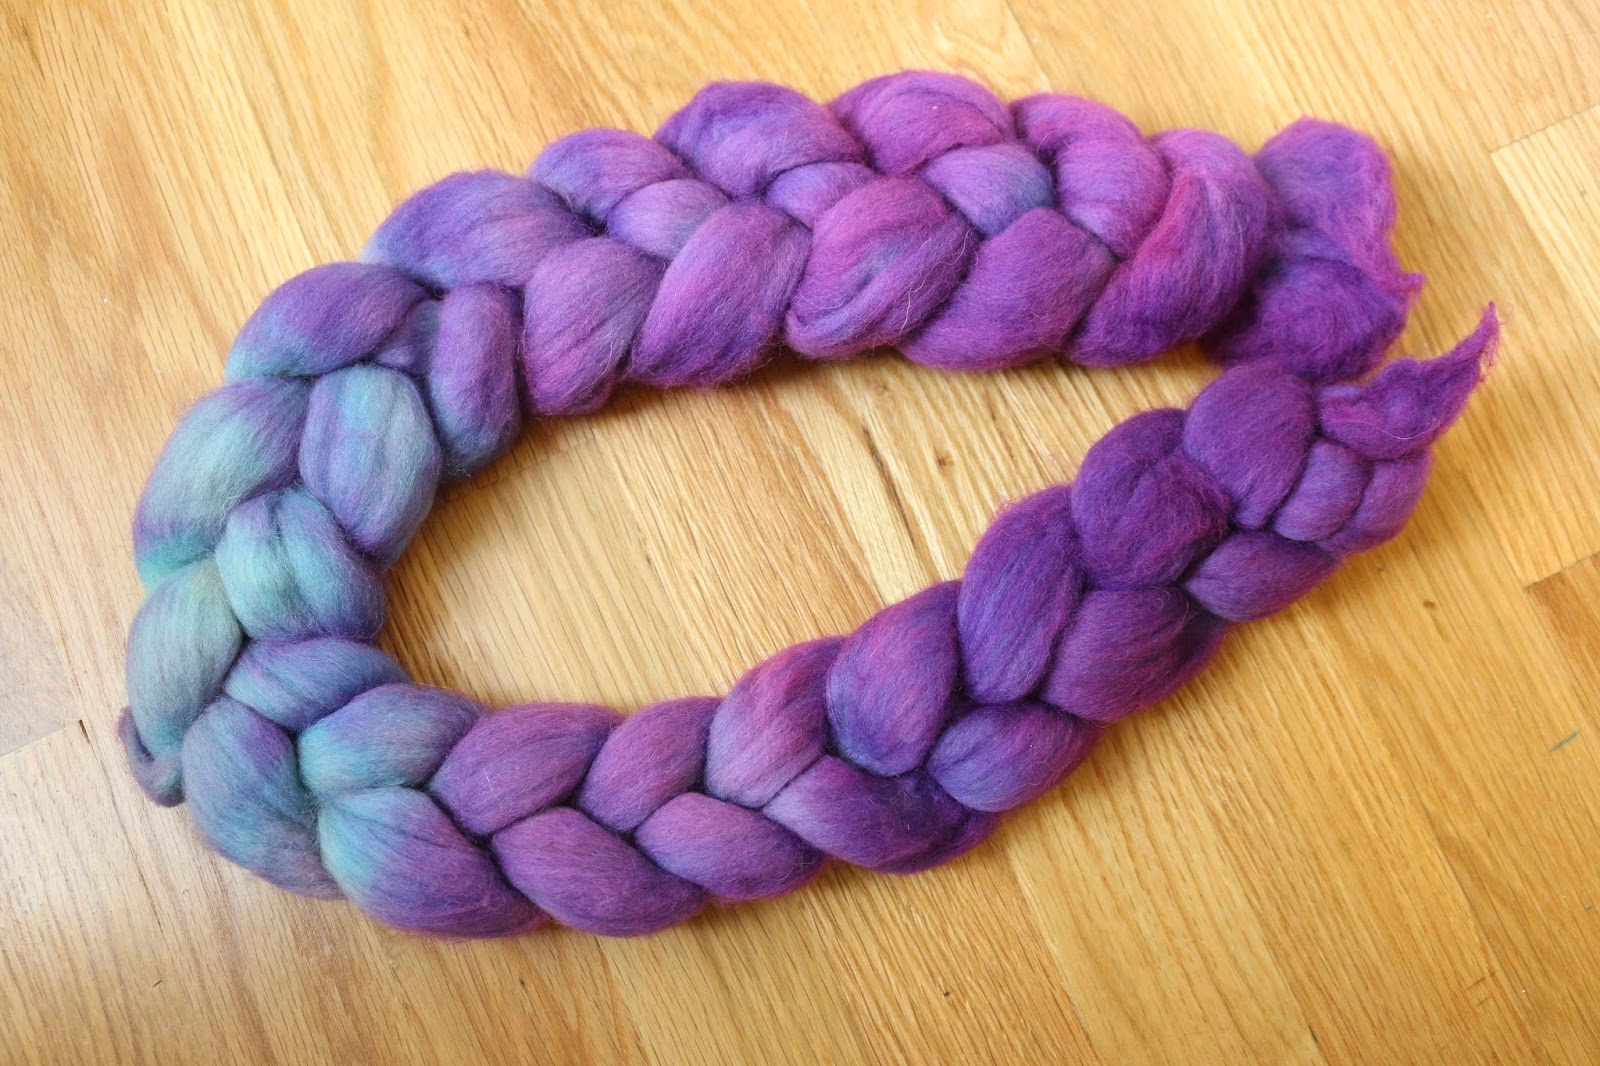 ChemKnits: Dip Dyeing Braided Roving into WIlton\'s Violet Food Coloring